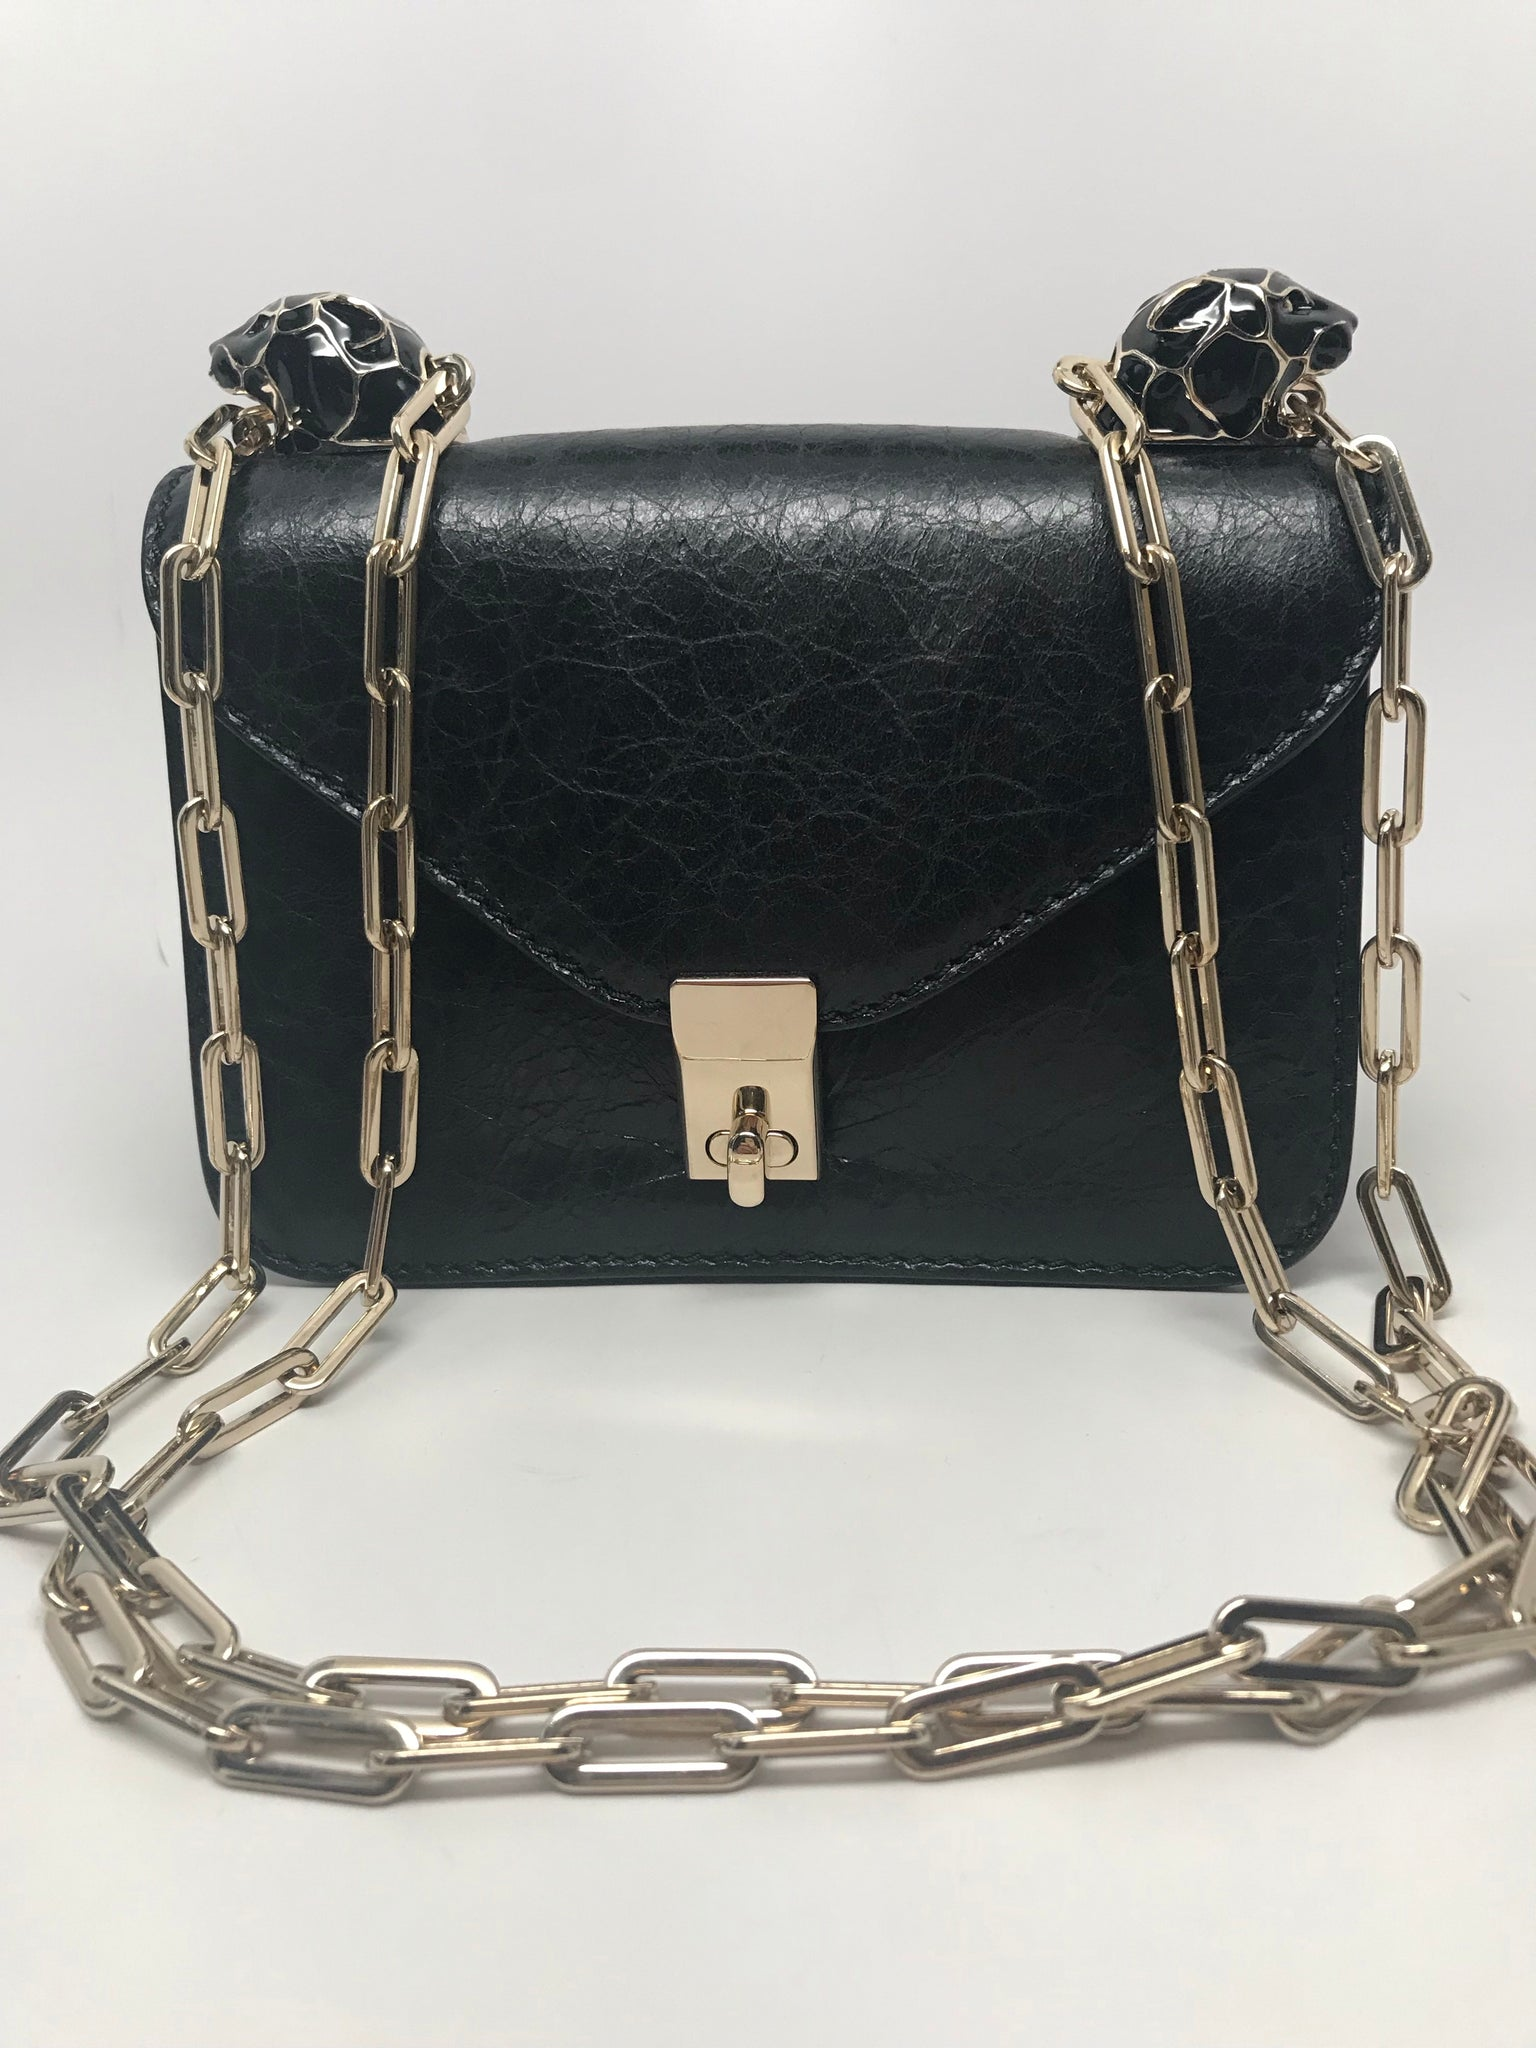 VALENTINO GARAVANI BLACK PANTHER CHAIN LINK SHOULDER BAG